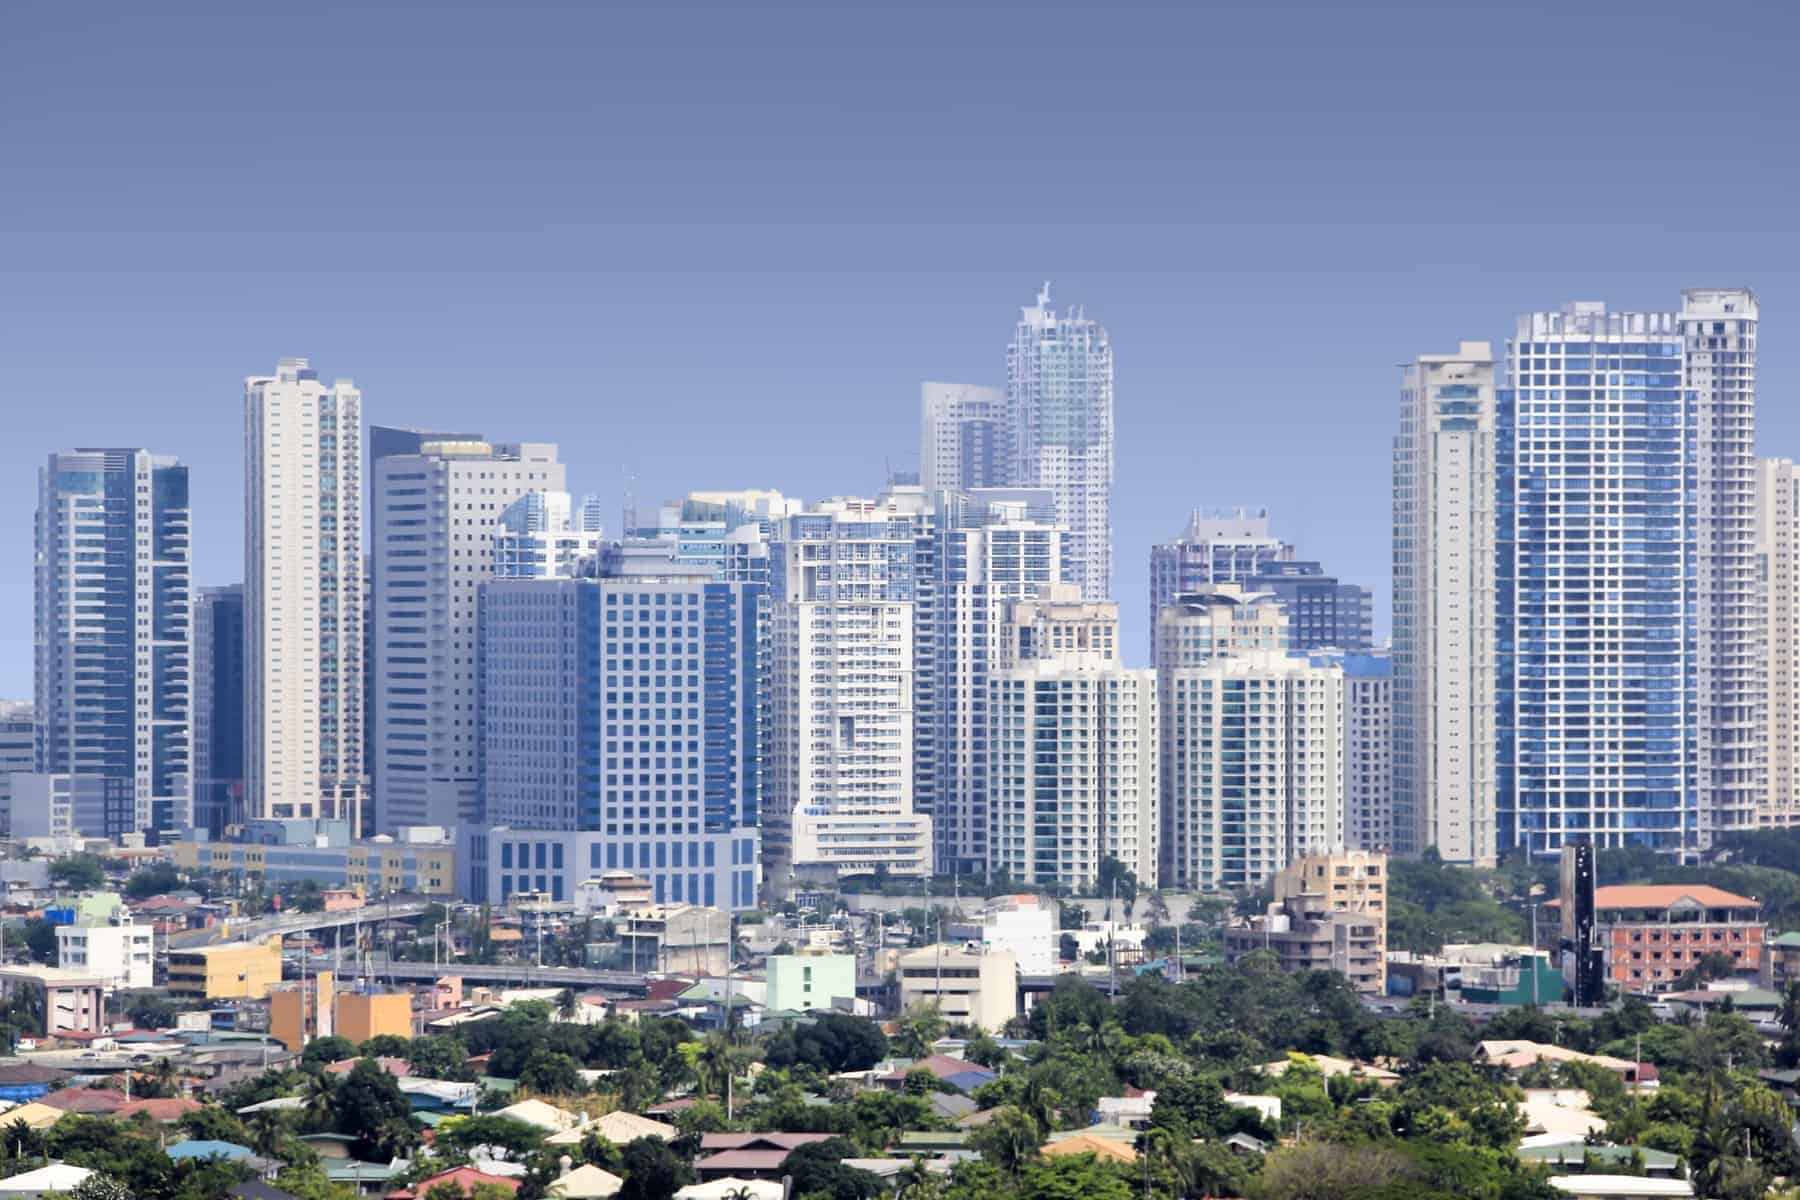 fort bonifacio modern financial and business district of metro manila in the philippines